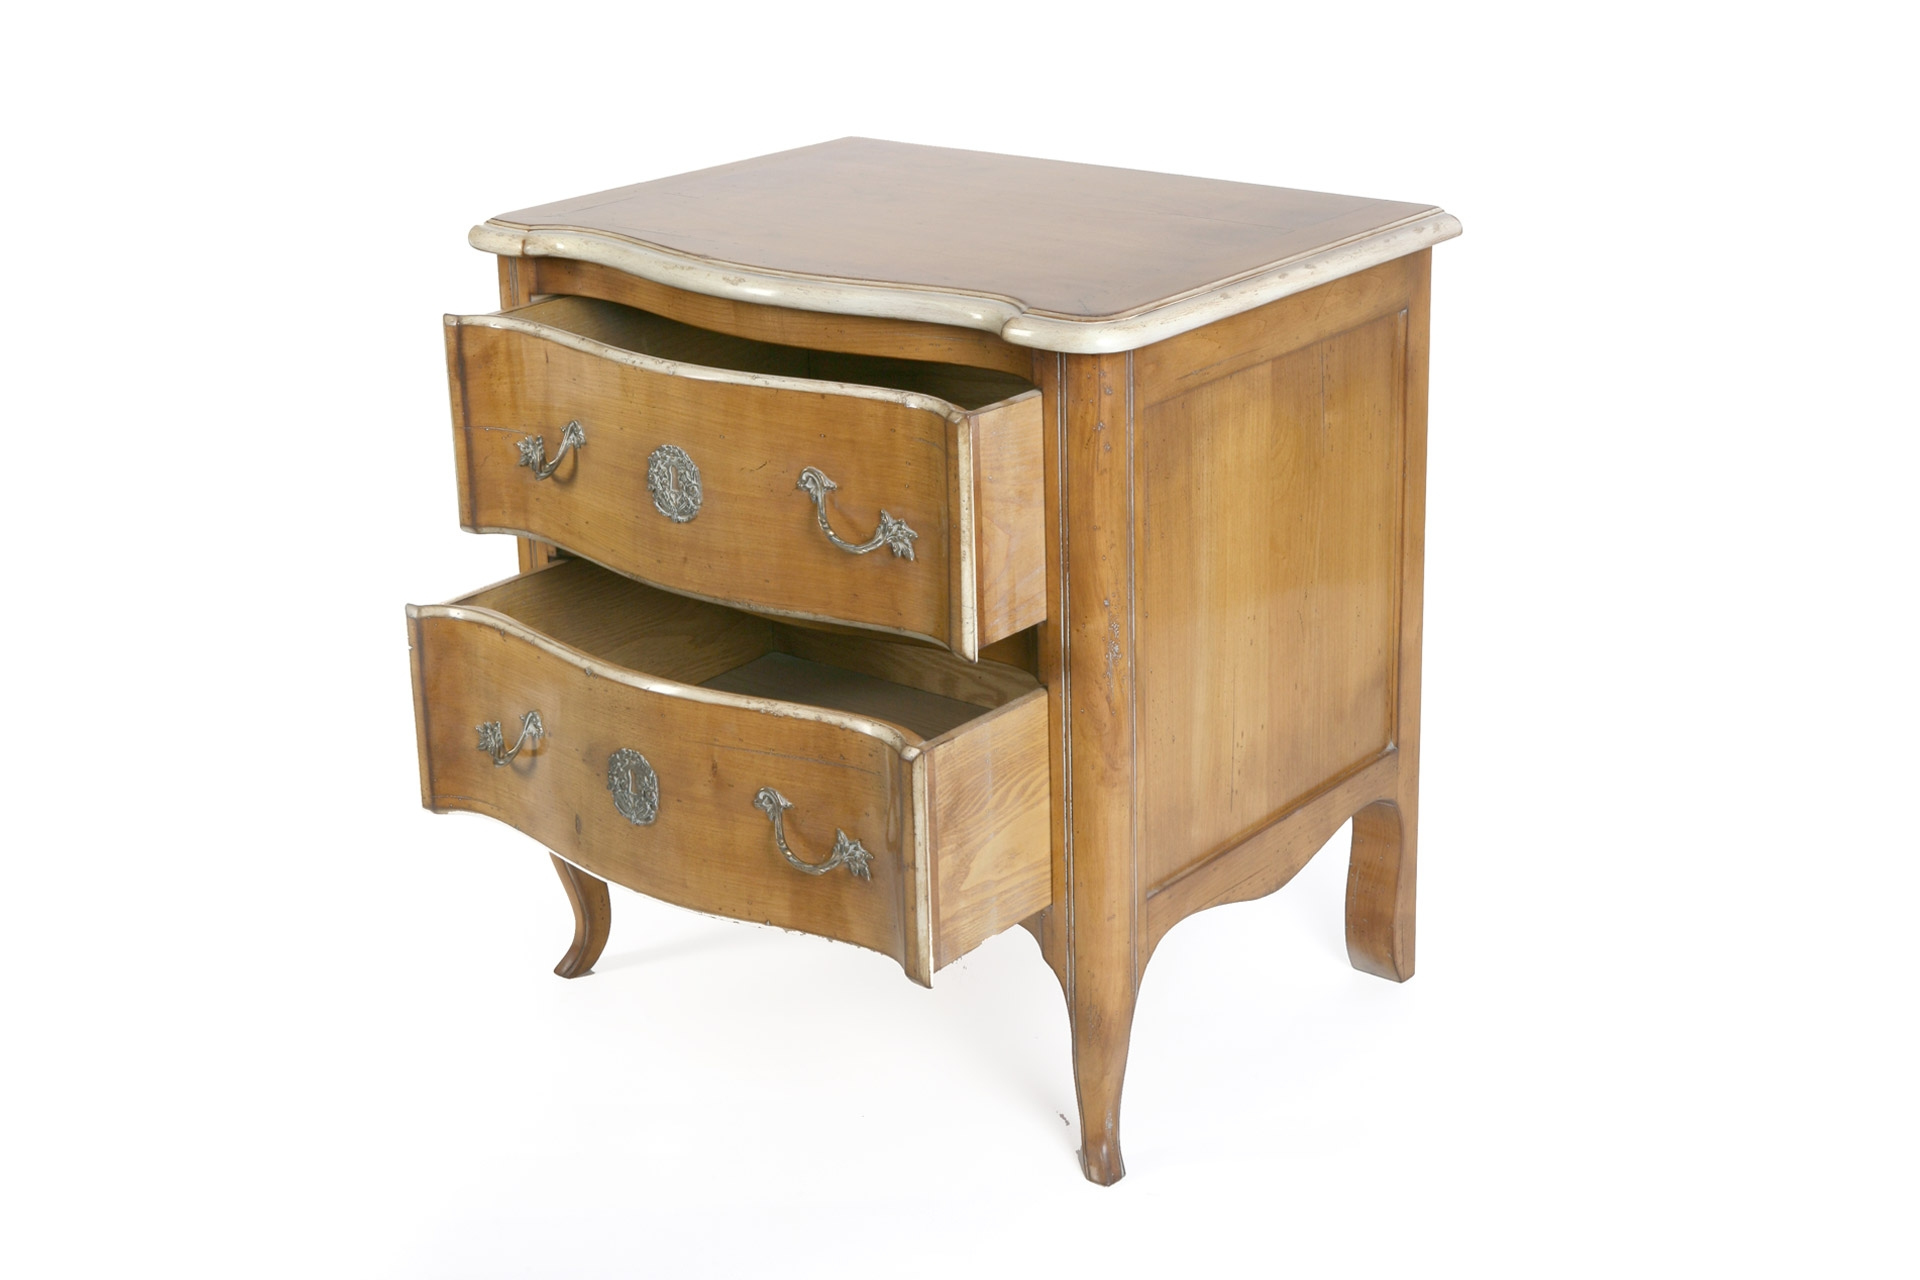 Regency Bedside Tables Michelet Bedside Tables